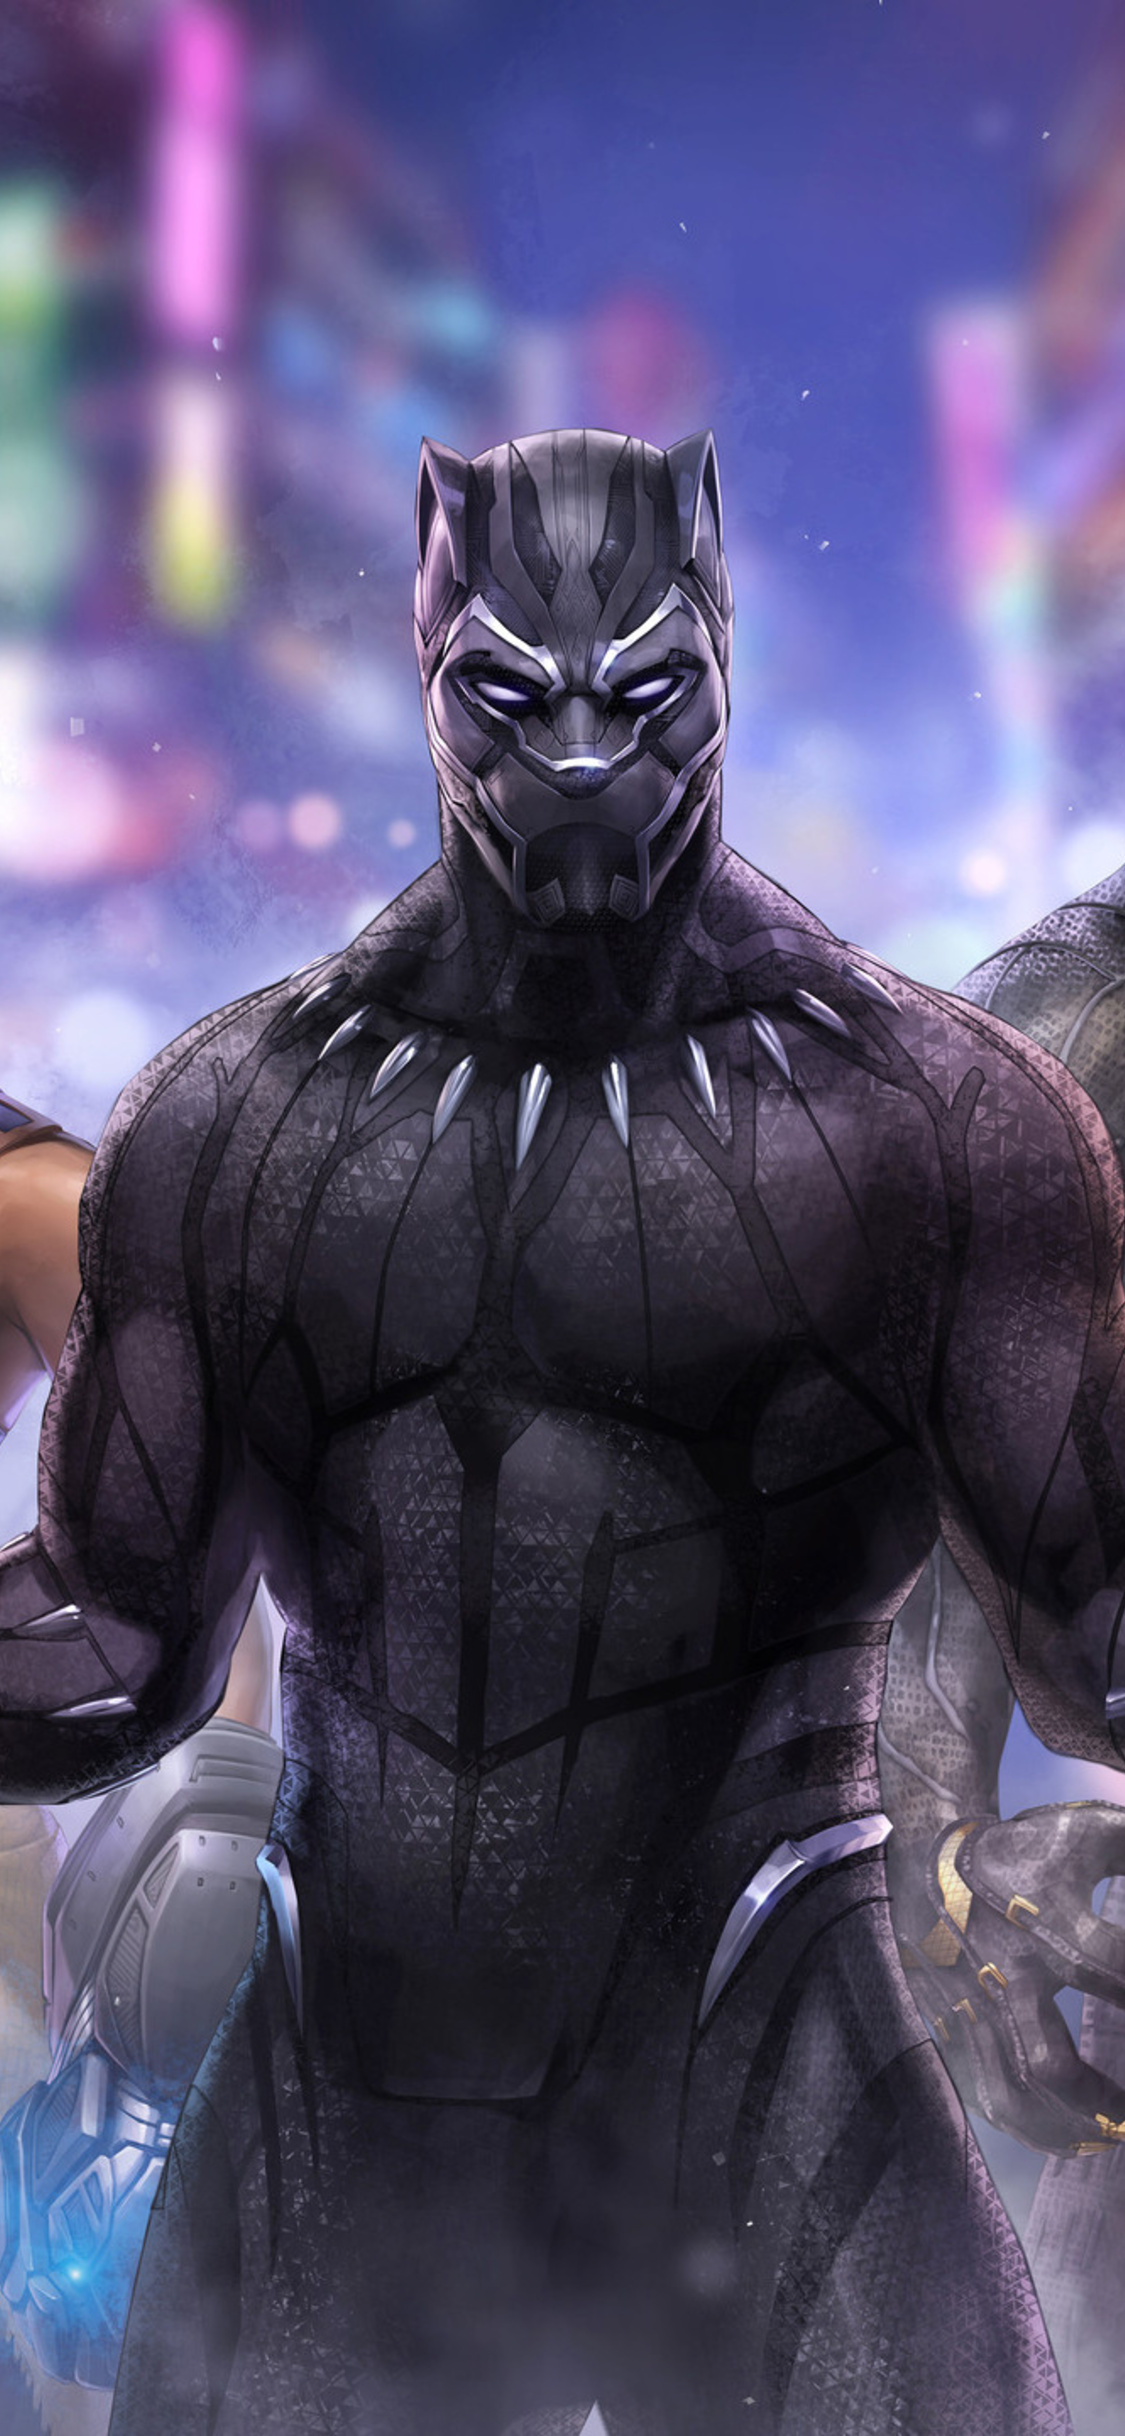 1125x2436 Black Panther Marvel Fight Iphone Xs Iphone 10 Iphone X Hd 4k Wallpapers Images Backgrounds Photos And Pictures